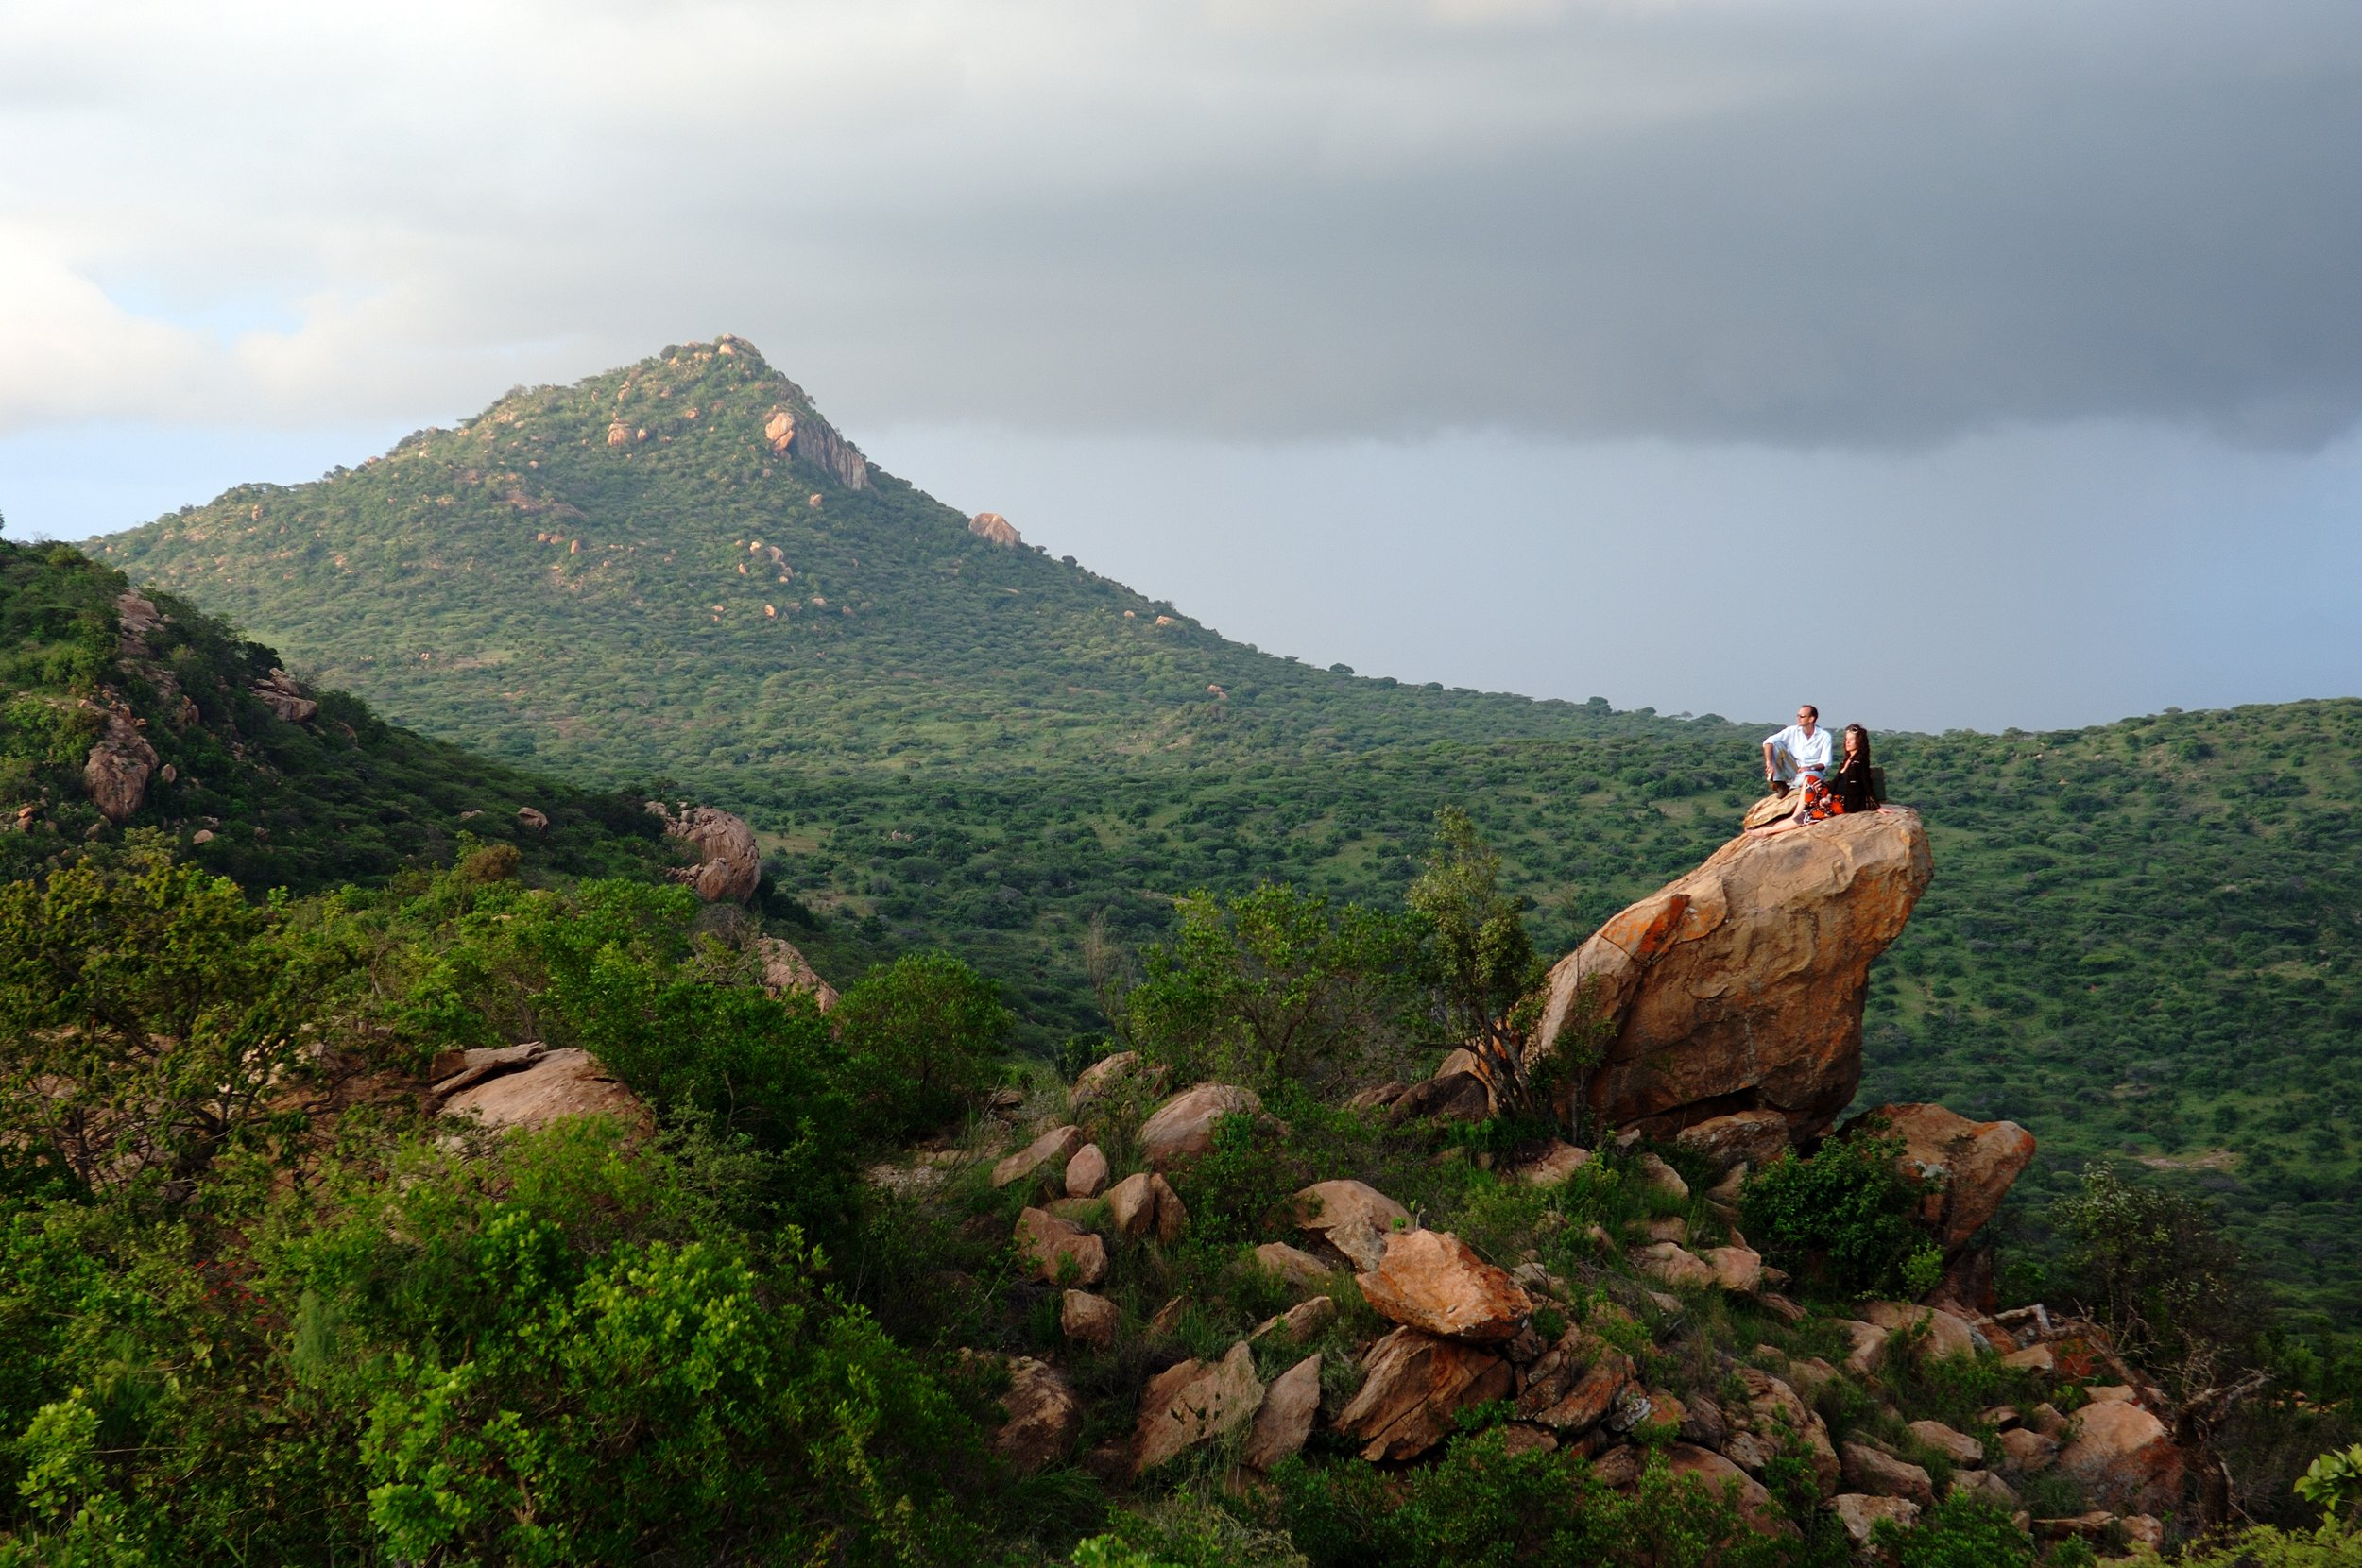 The perfect rock for sundowners in the Kenyan wilderness